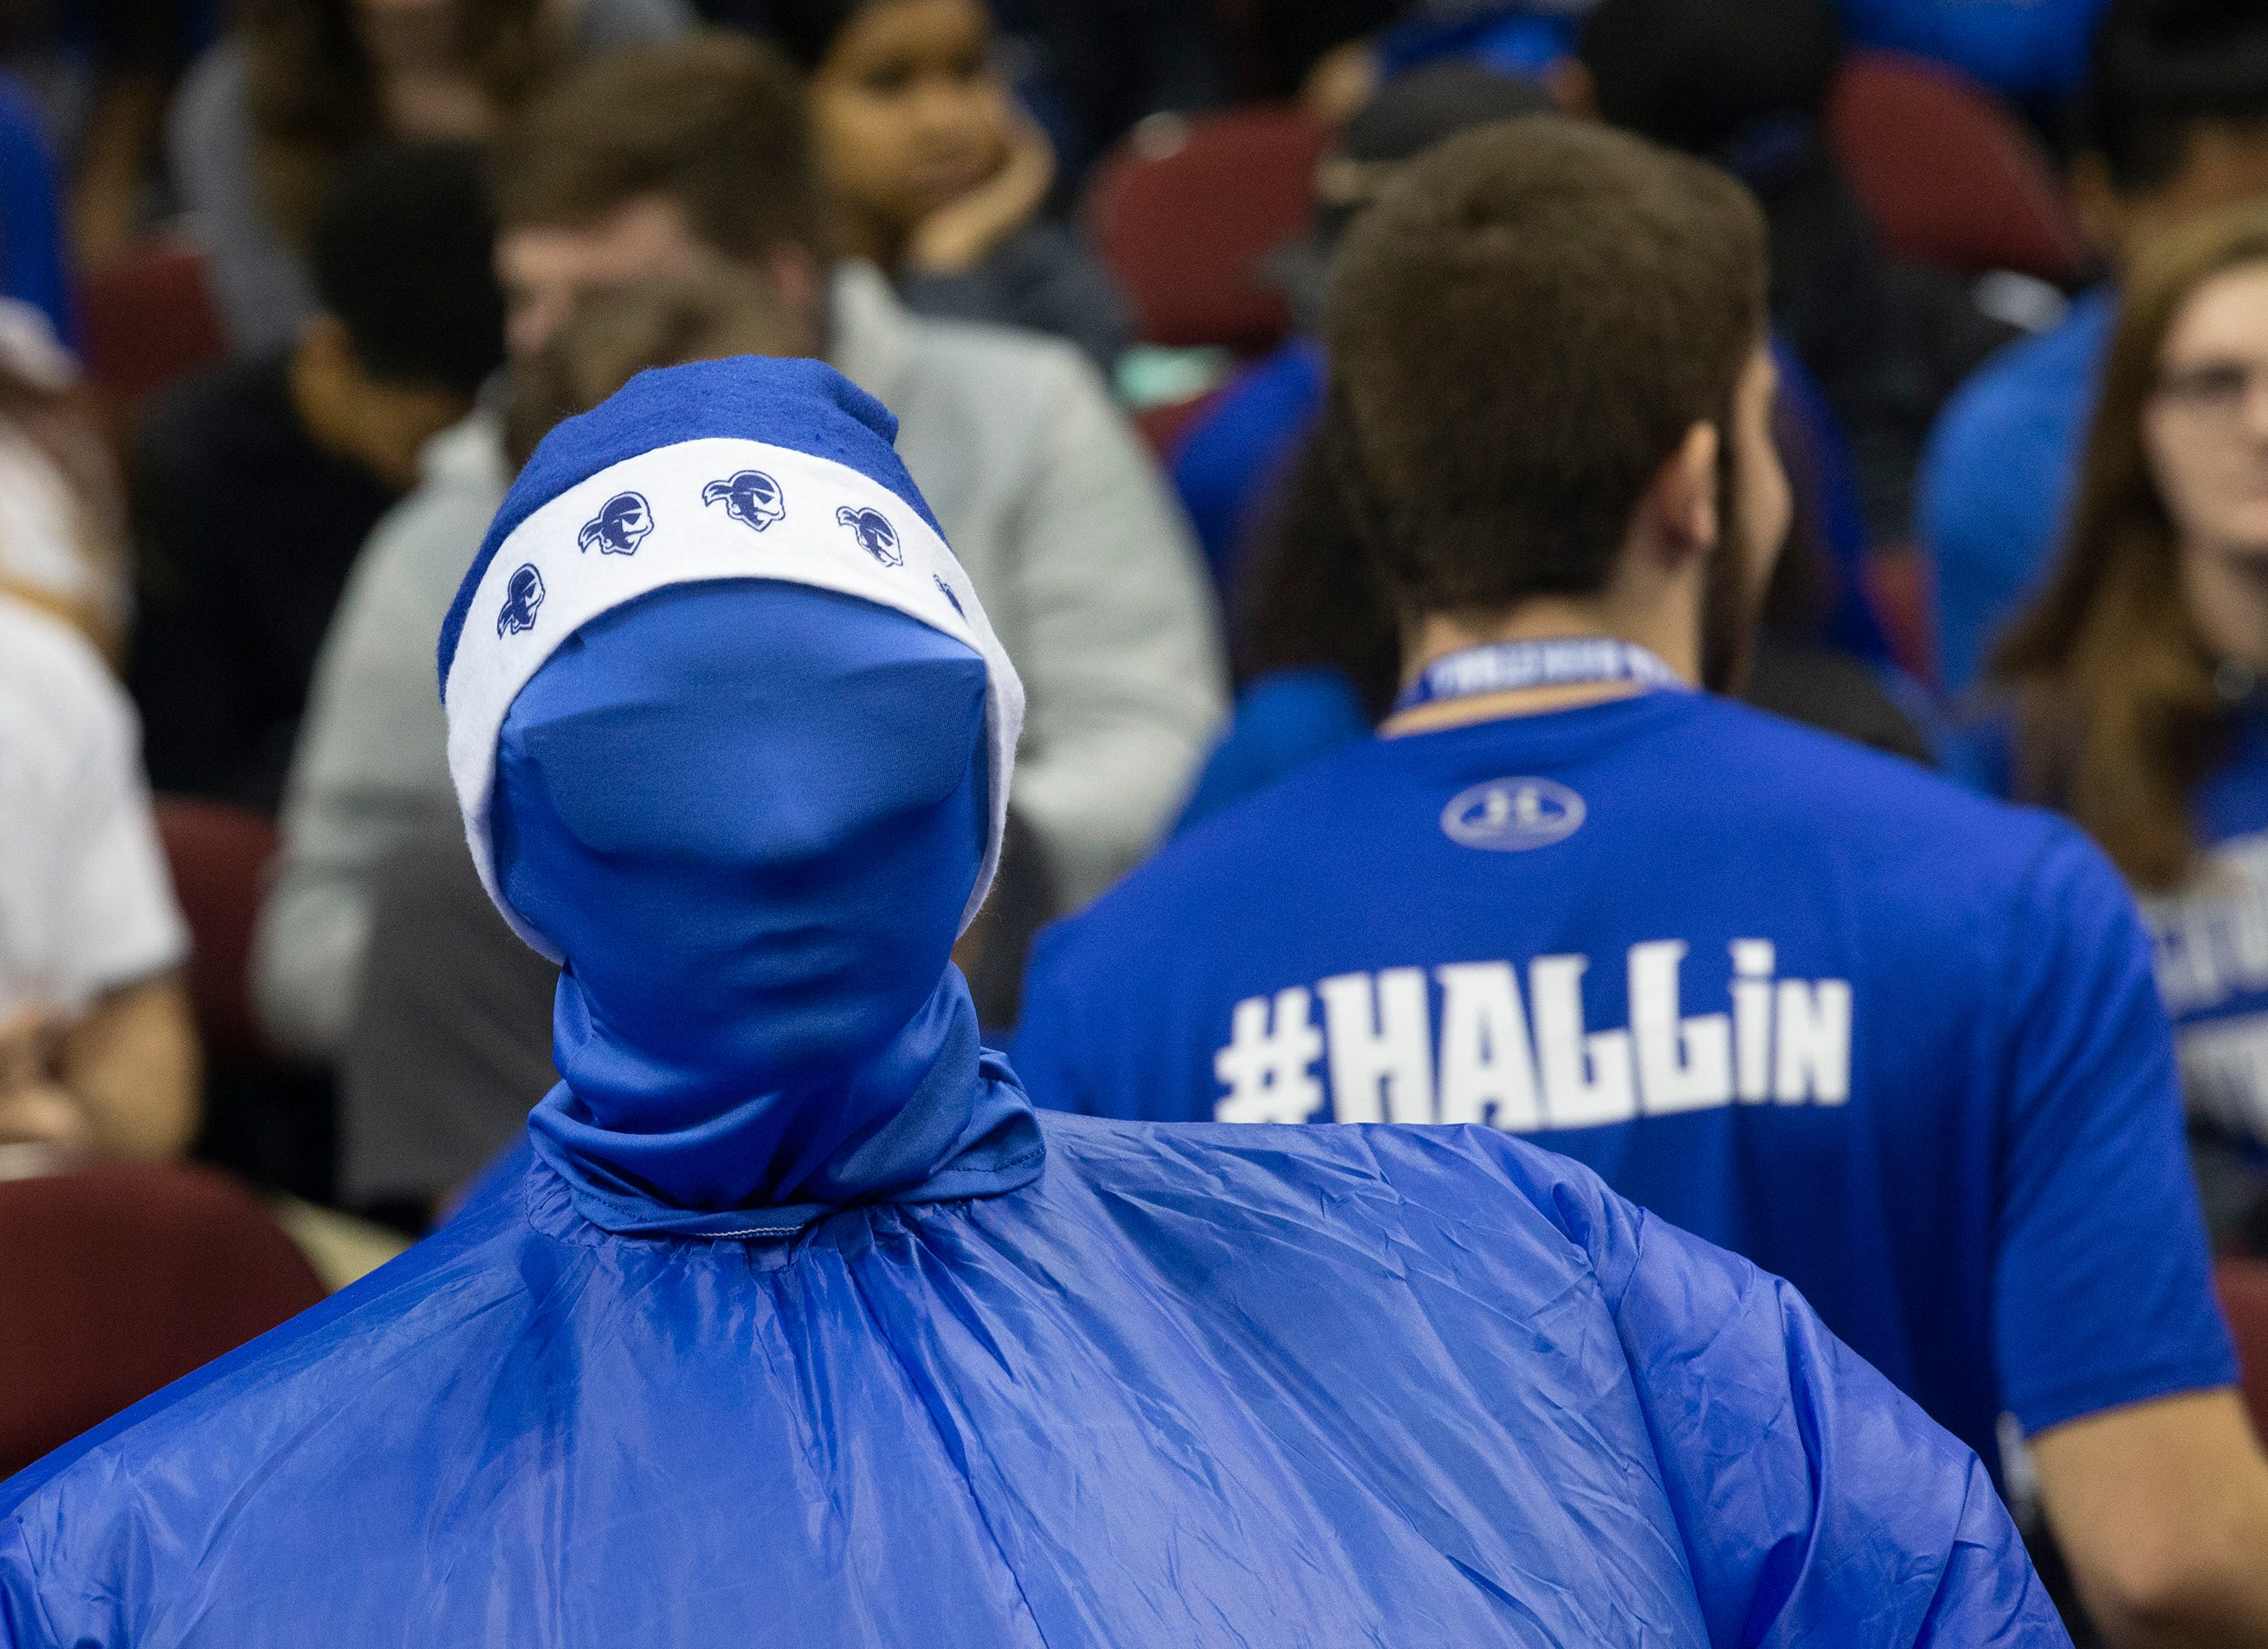 Seton Hall basketball: DePaul next